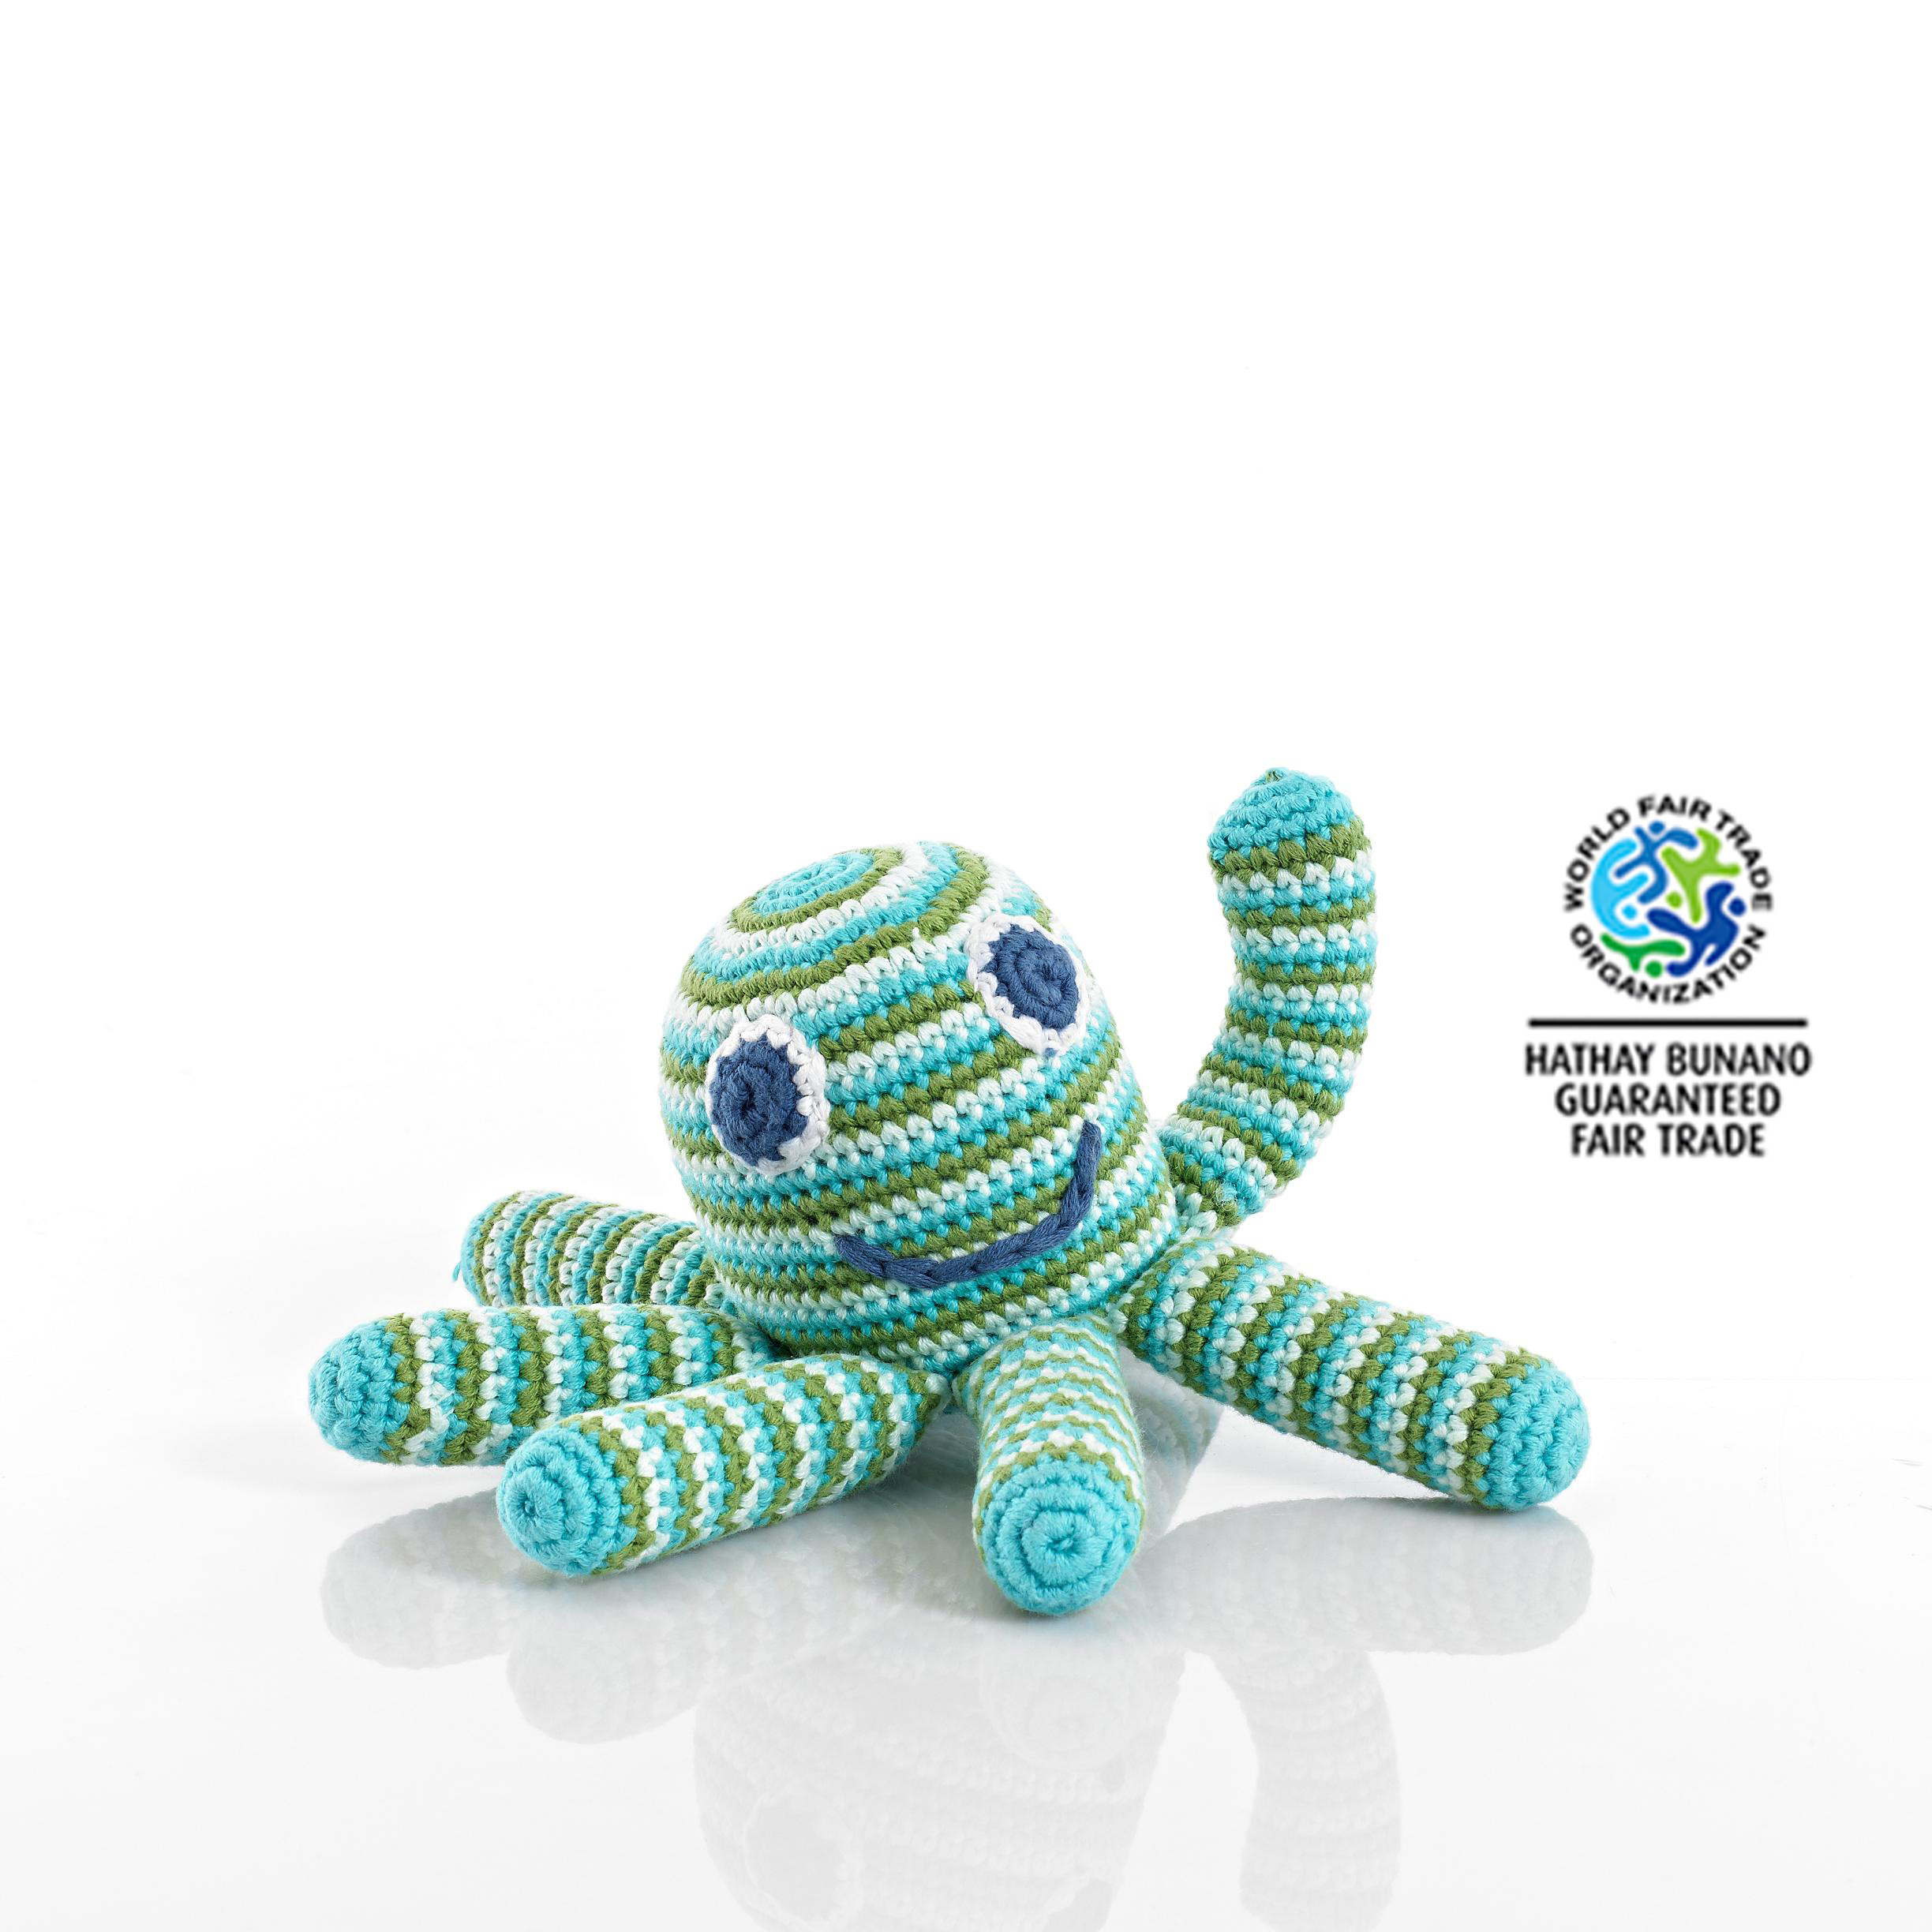 Crochet Baby toys Inspirational Baby toys Fair Trade Crochet Cotton Octopus Baby Rattle Of Great 46 Photos Crochet Baby toys